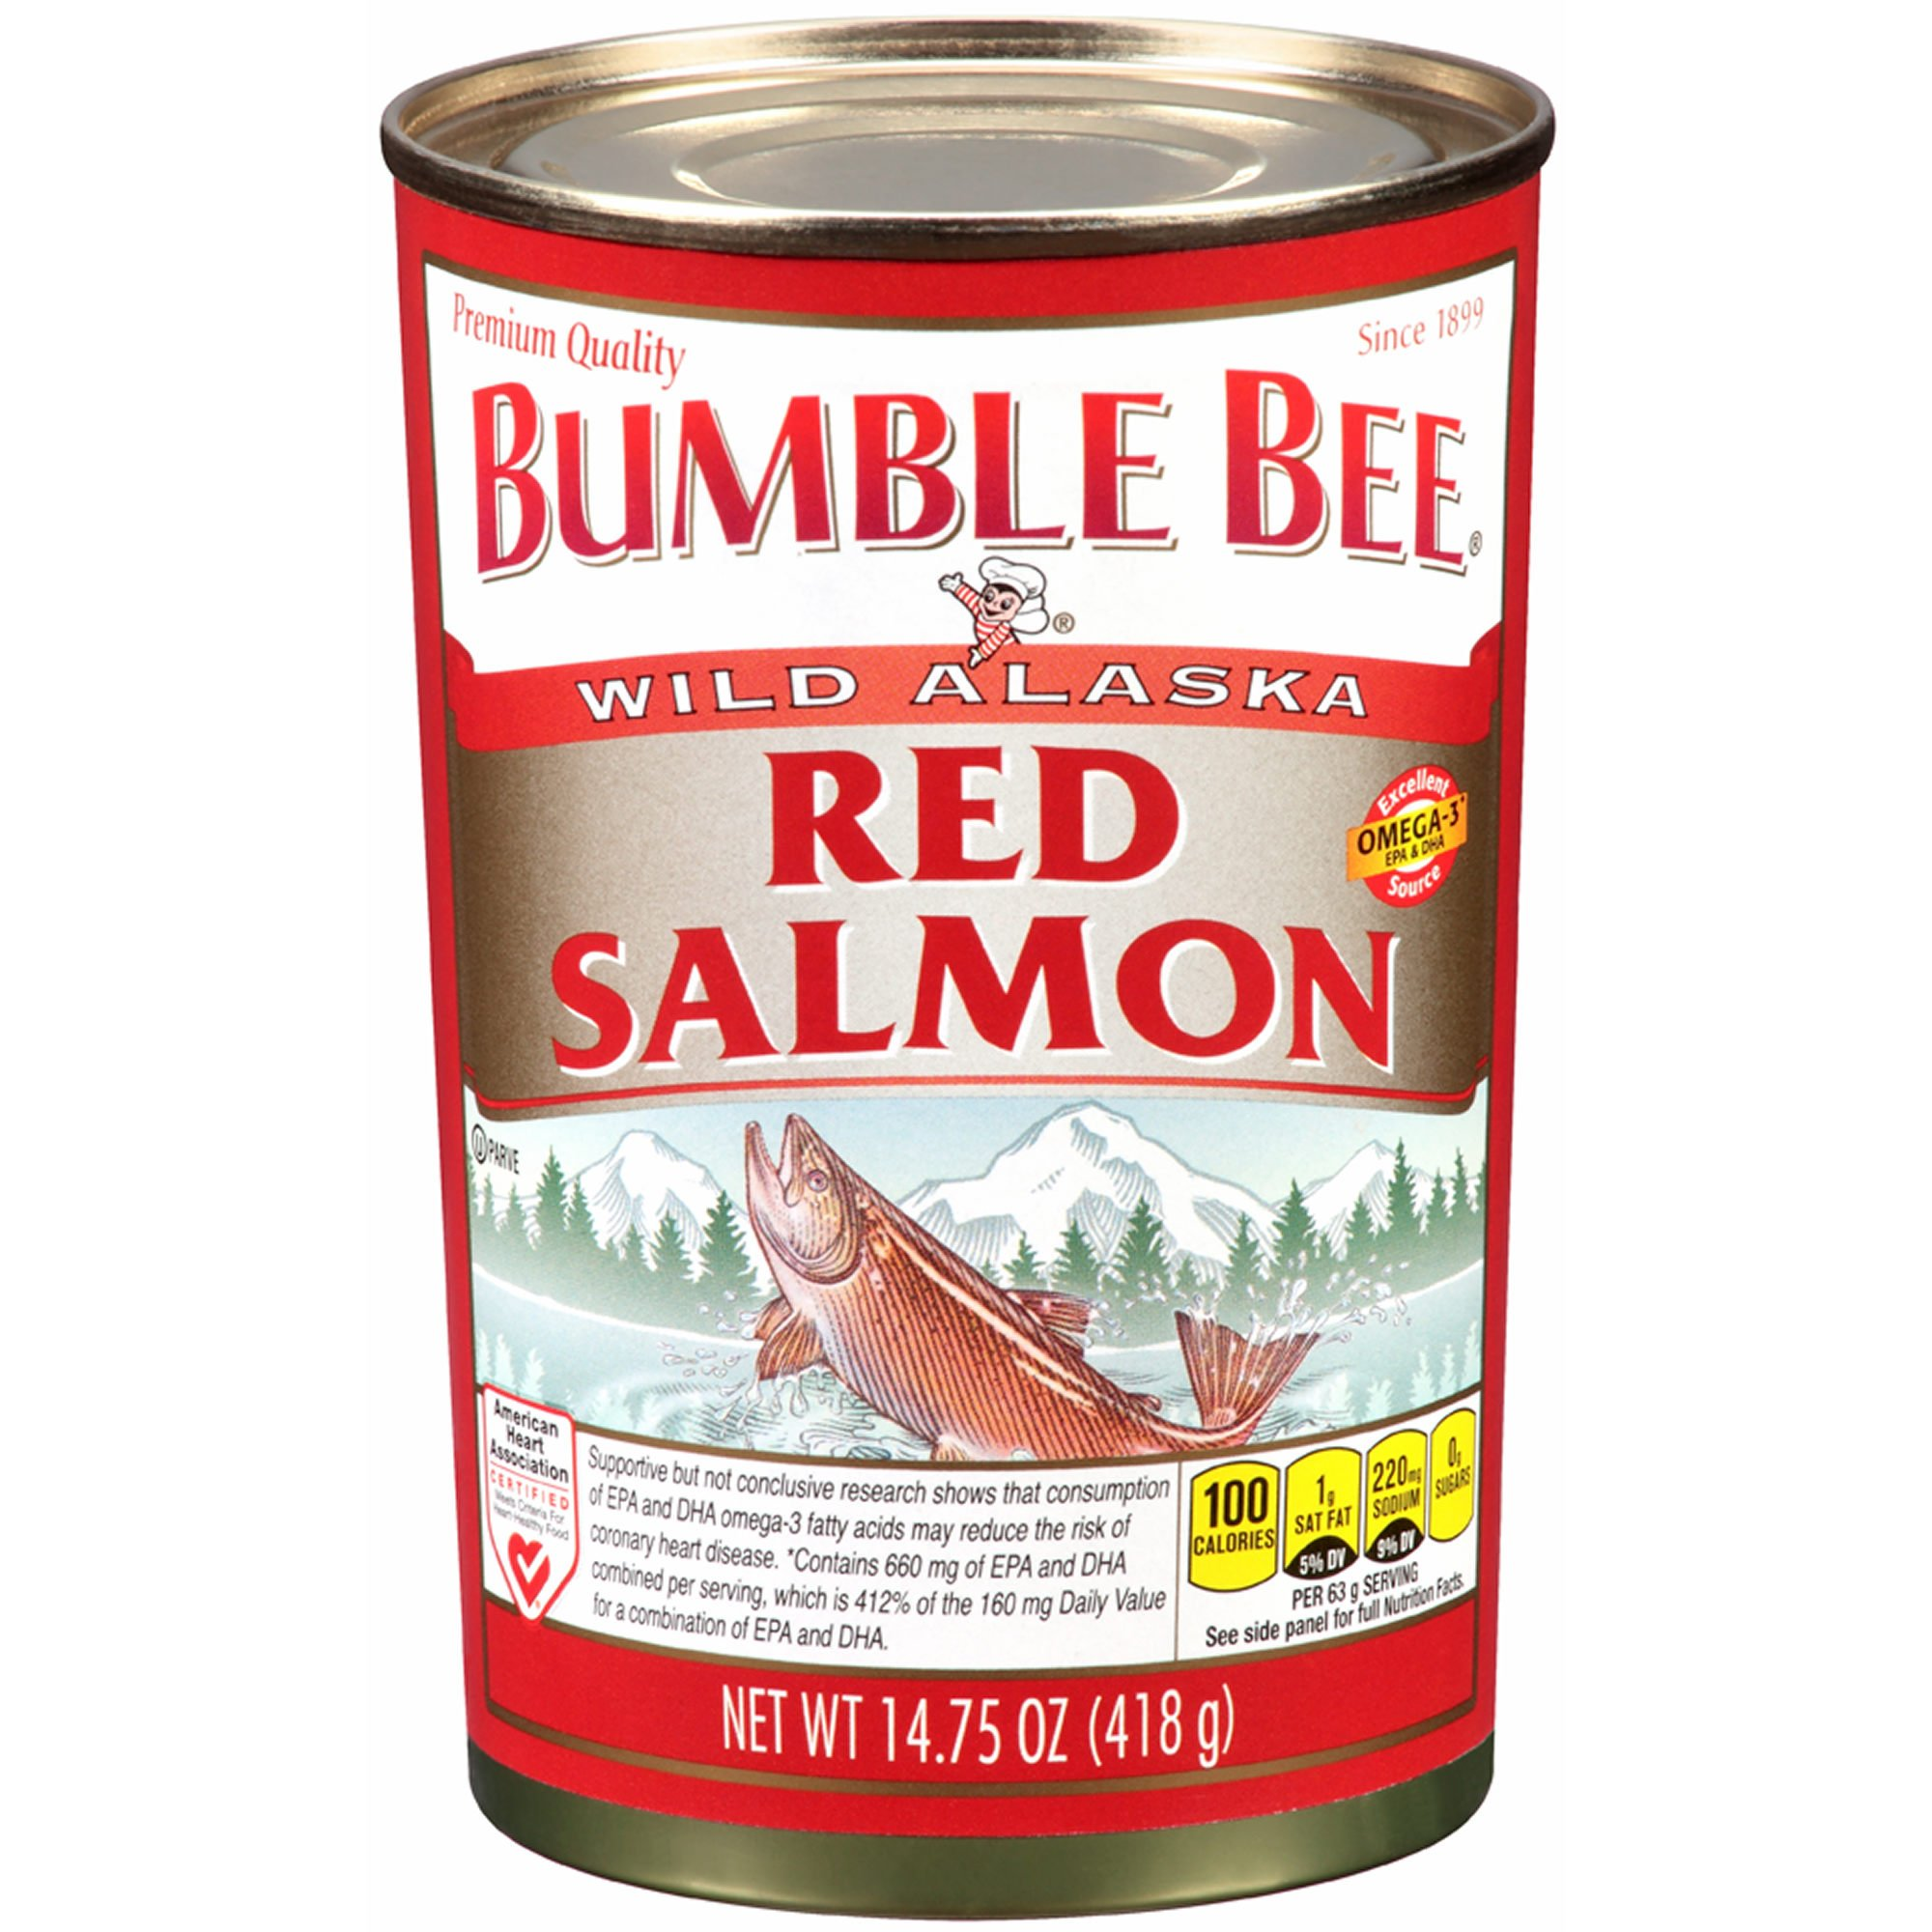 Bumble Bee Wild Alaska Red Salmon, 14.75 oz. (pack of 2) by Bumble Bee